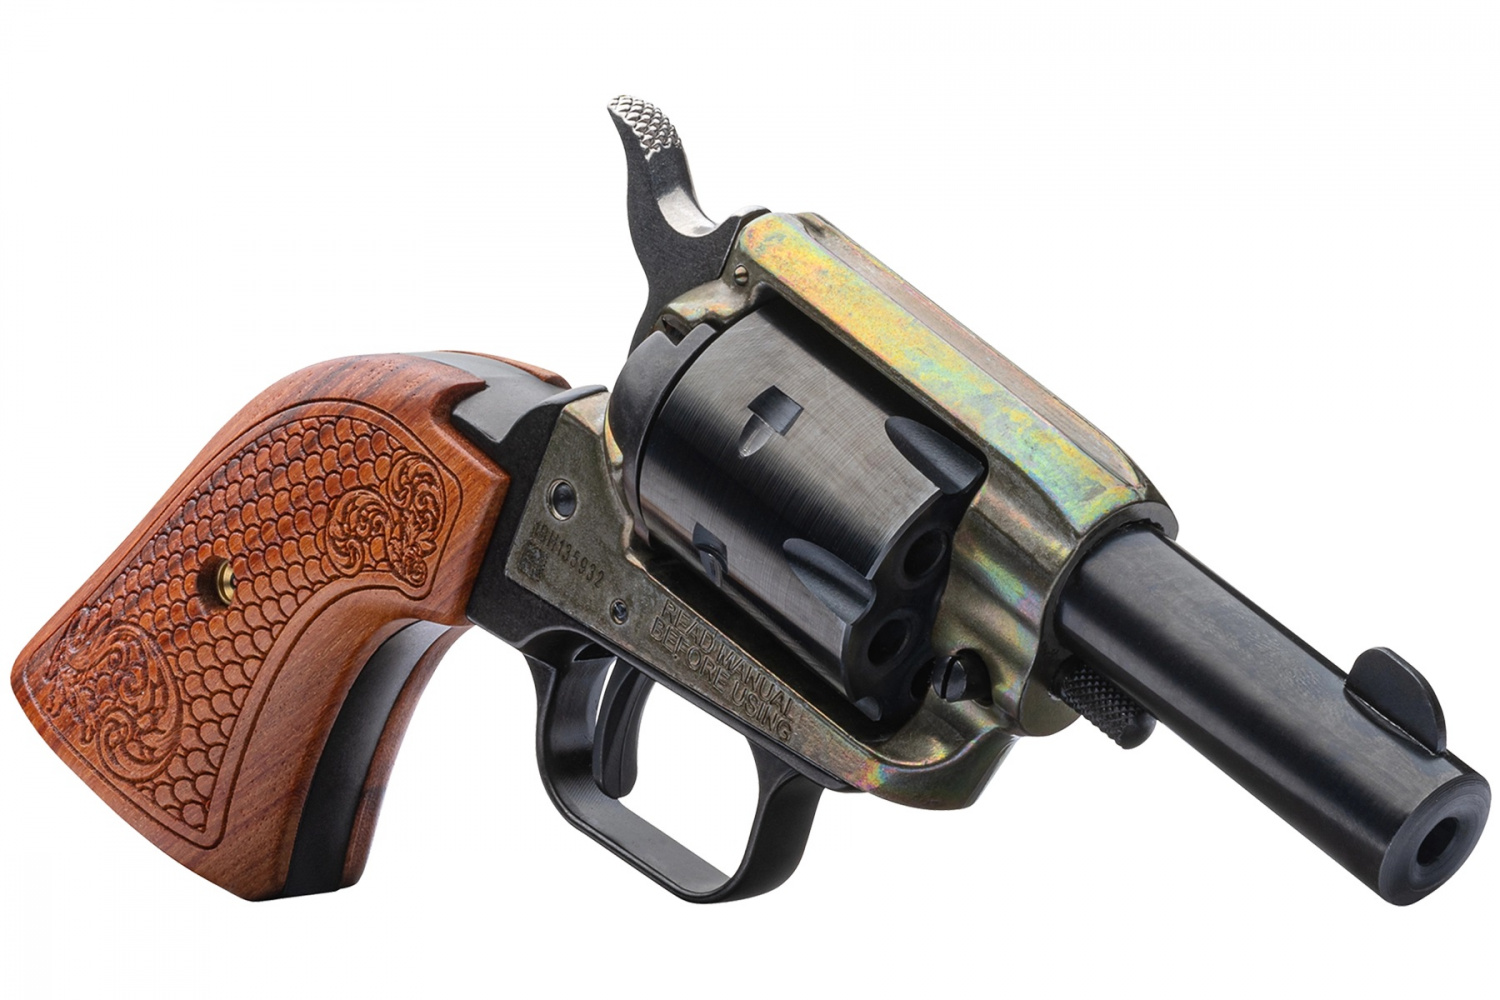 The Top Selling Guns for September 2021 - Did your Gat Make the Cut?